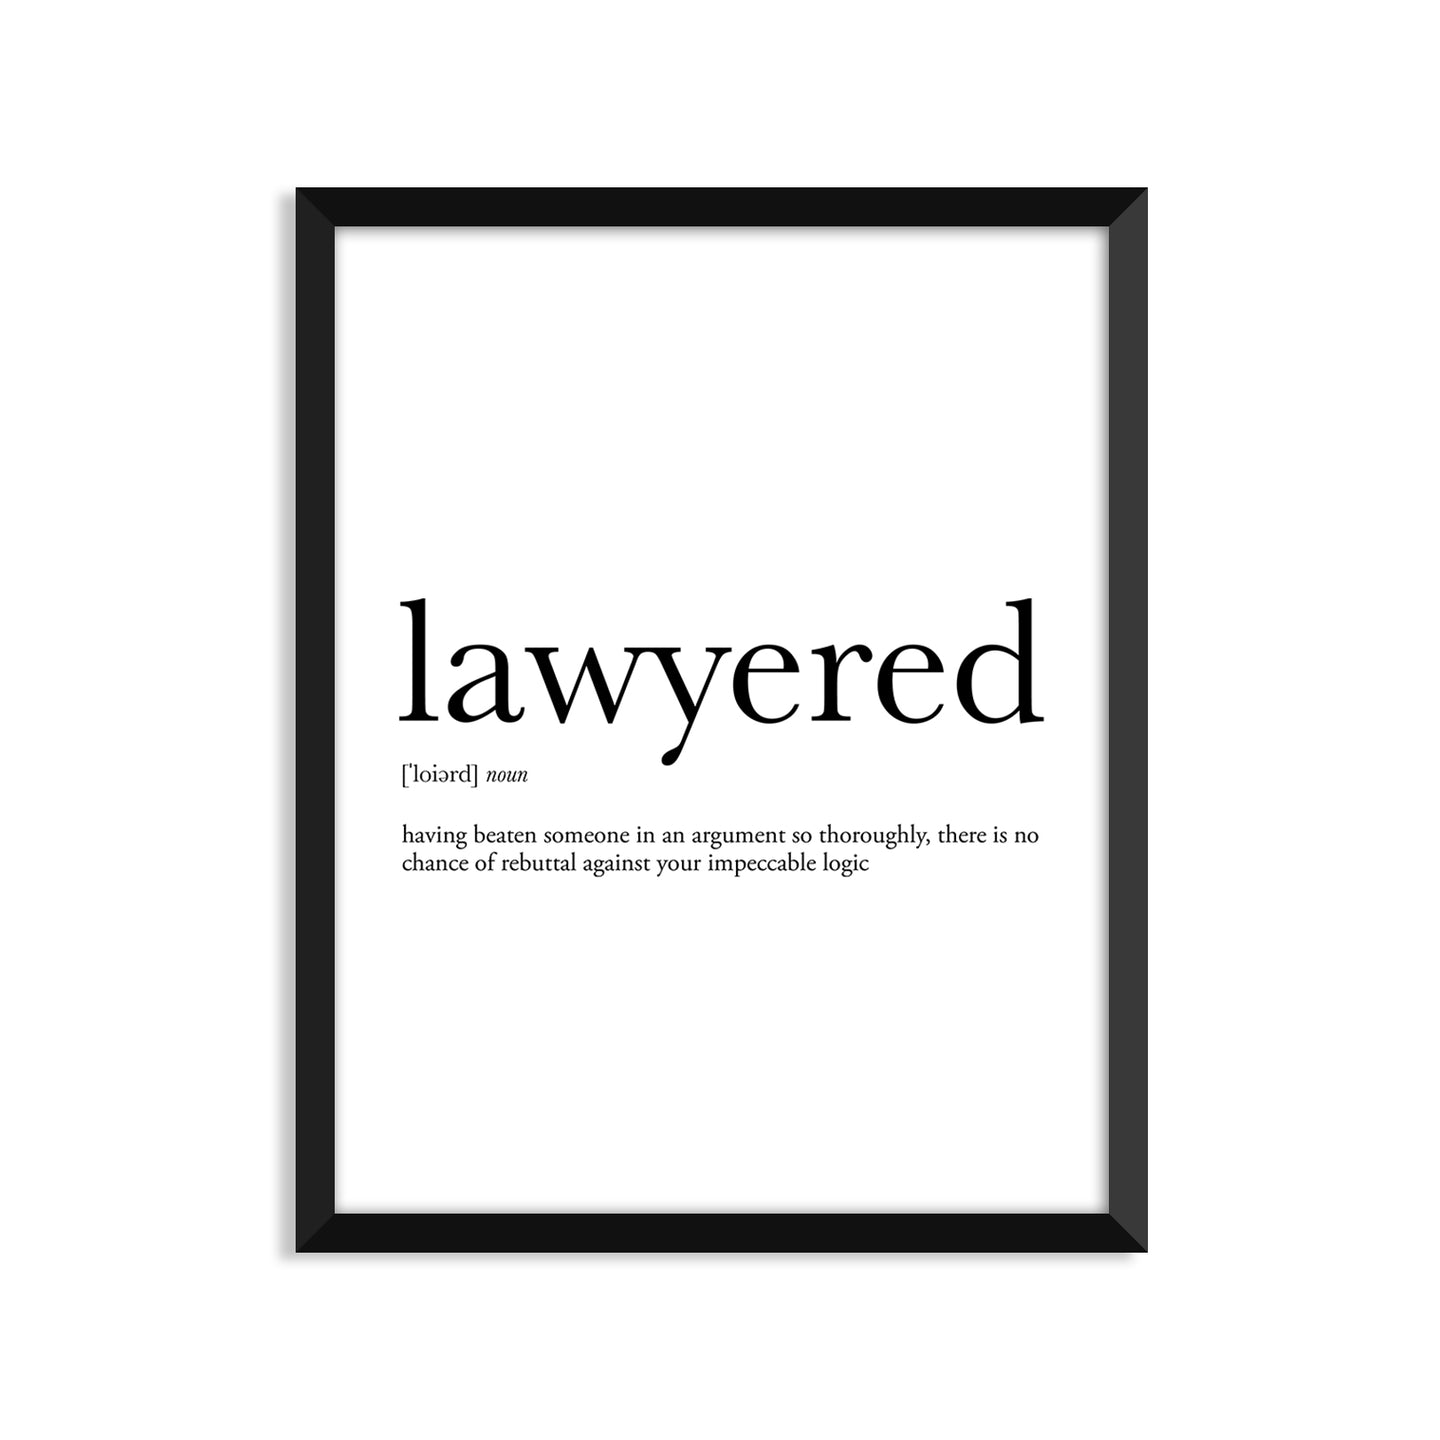 Lawyered Definition - Unframed Art Print Or Greeting Card